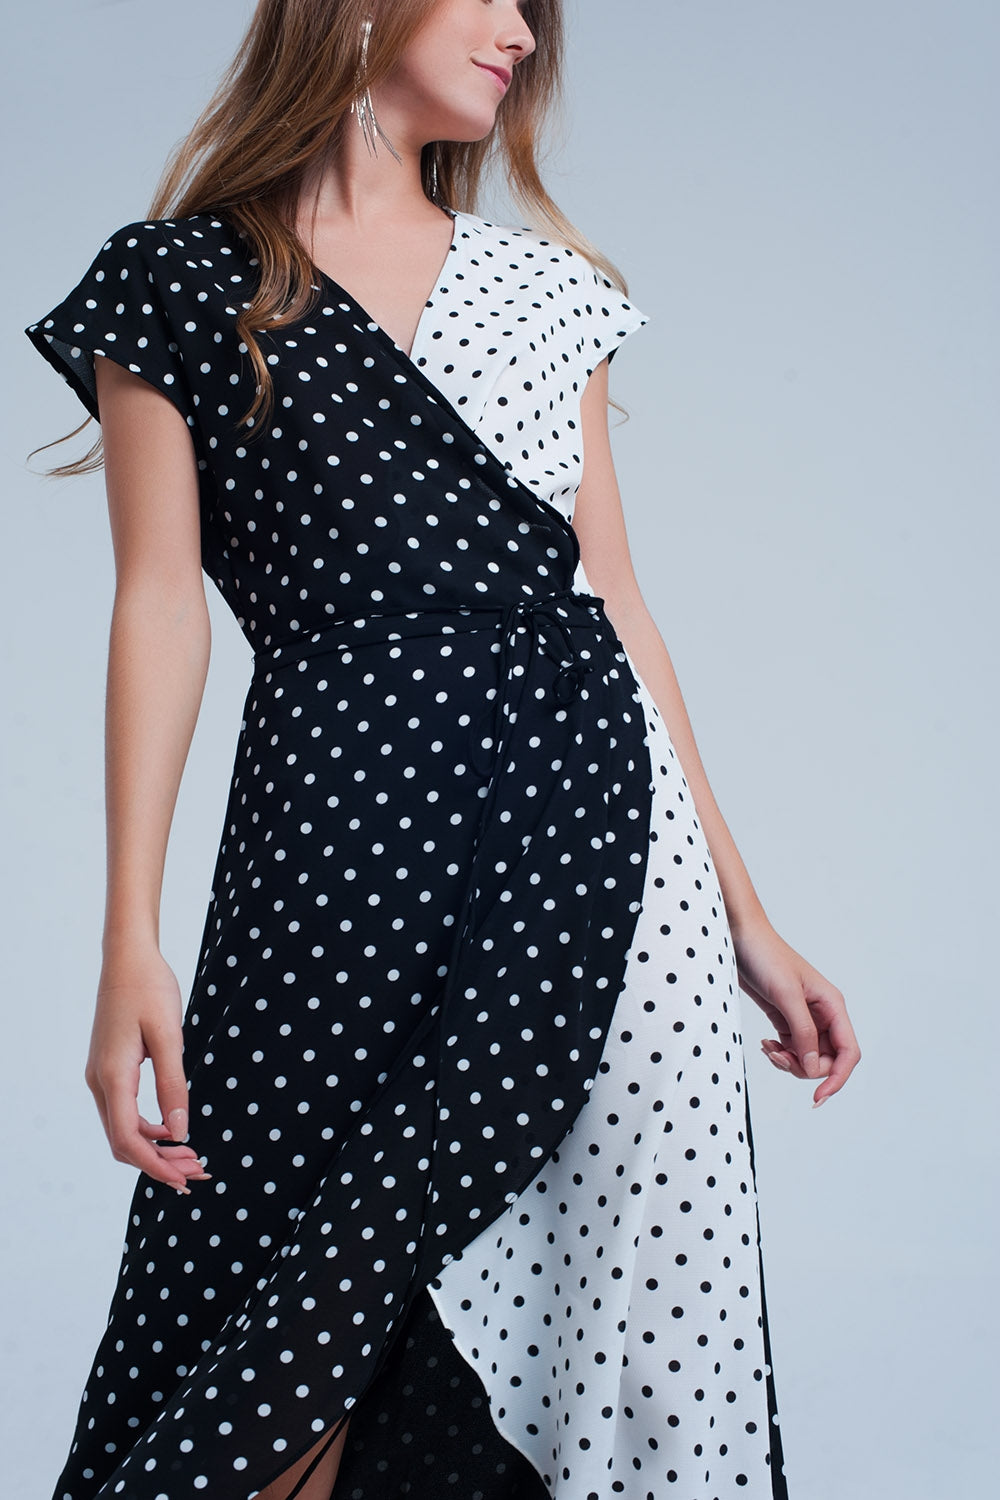 Black White Wrap Dress With Polka Dots